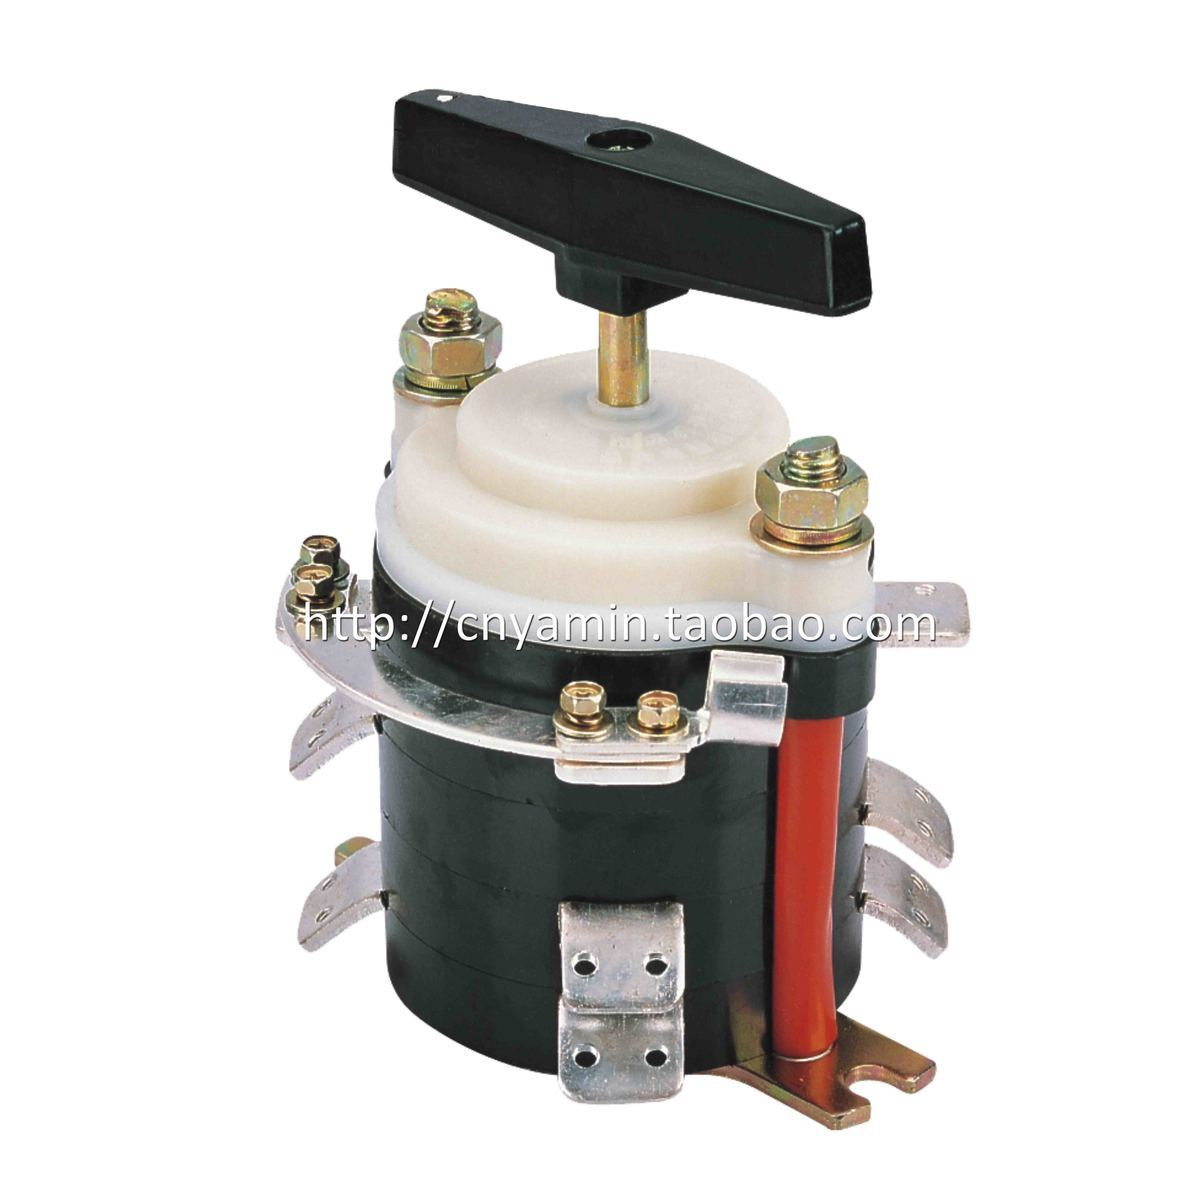 KDH-200A Welding Machine Switch BX3-500 Will Current Rotating Knob 4 Layer presidential nominee will address a gathering